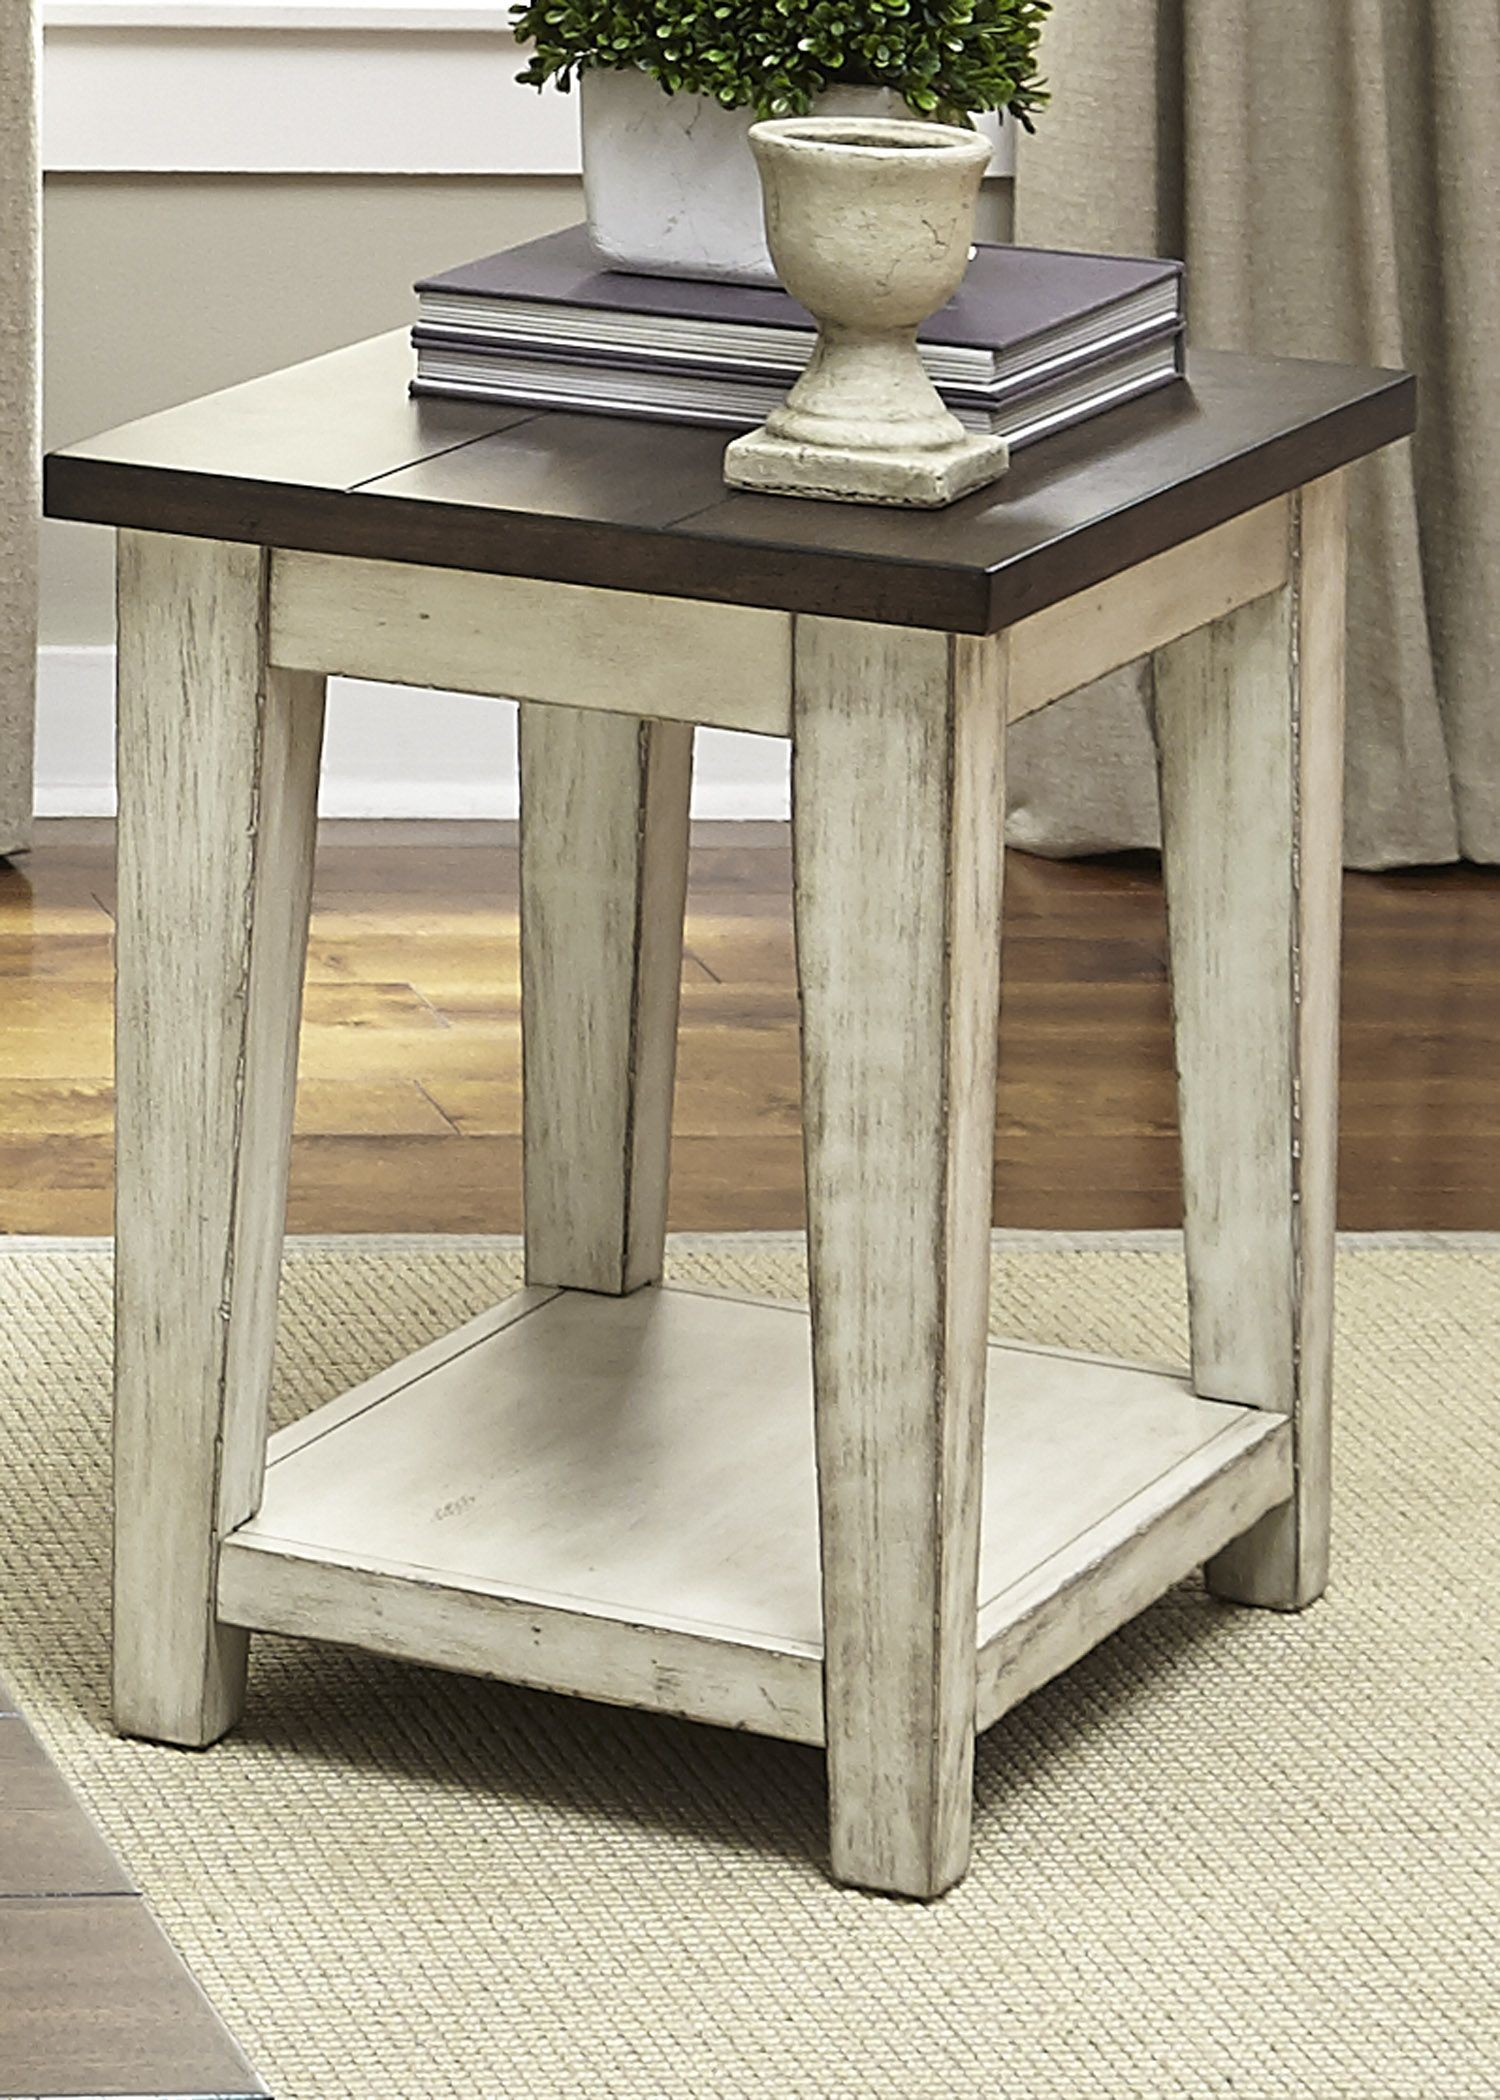 Lancaster Antique White and Brown Chair Side Table from Liberty 612OT1021  Coleman Furniture